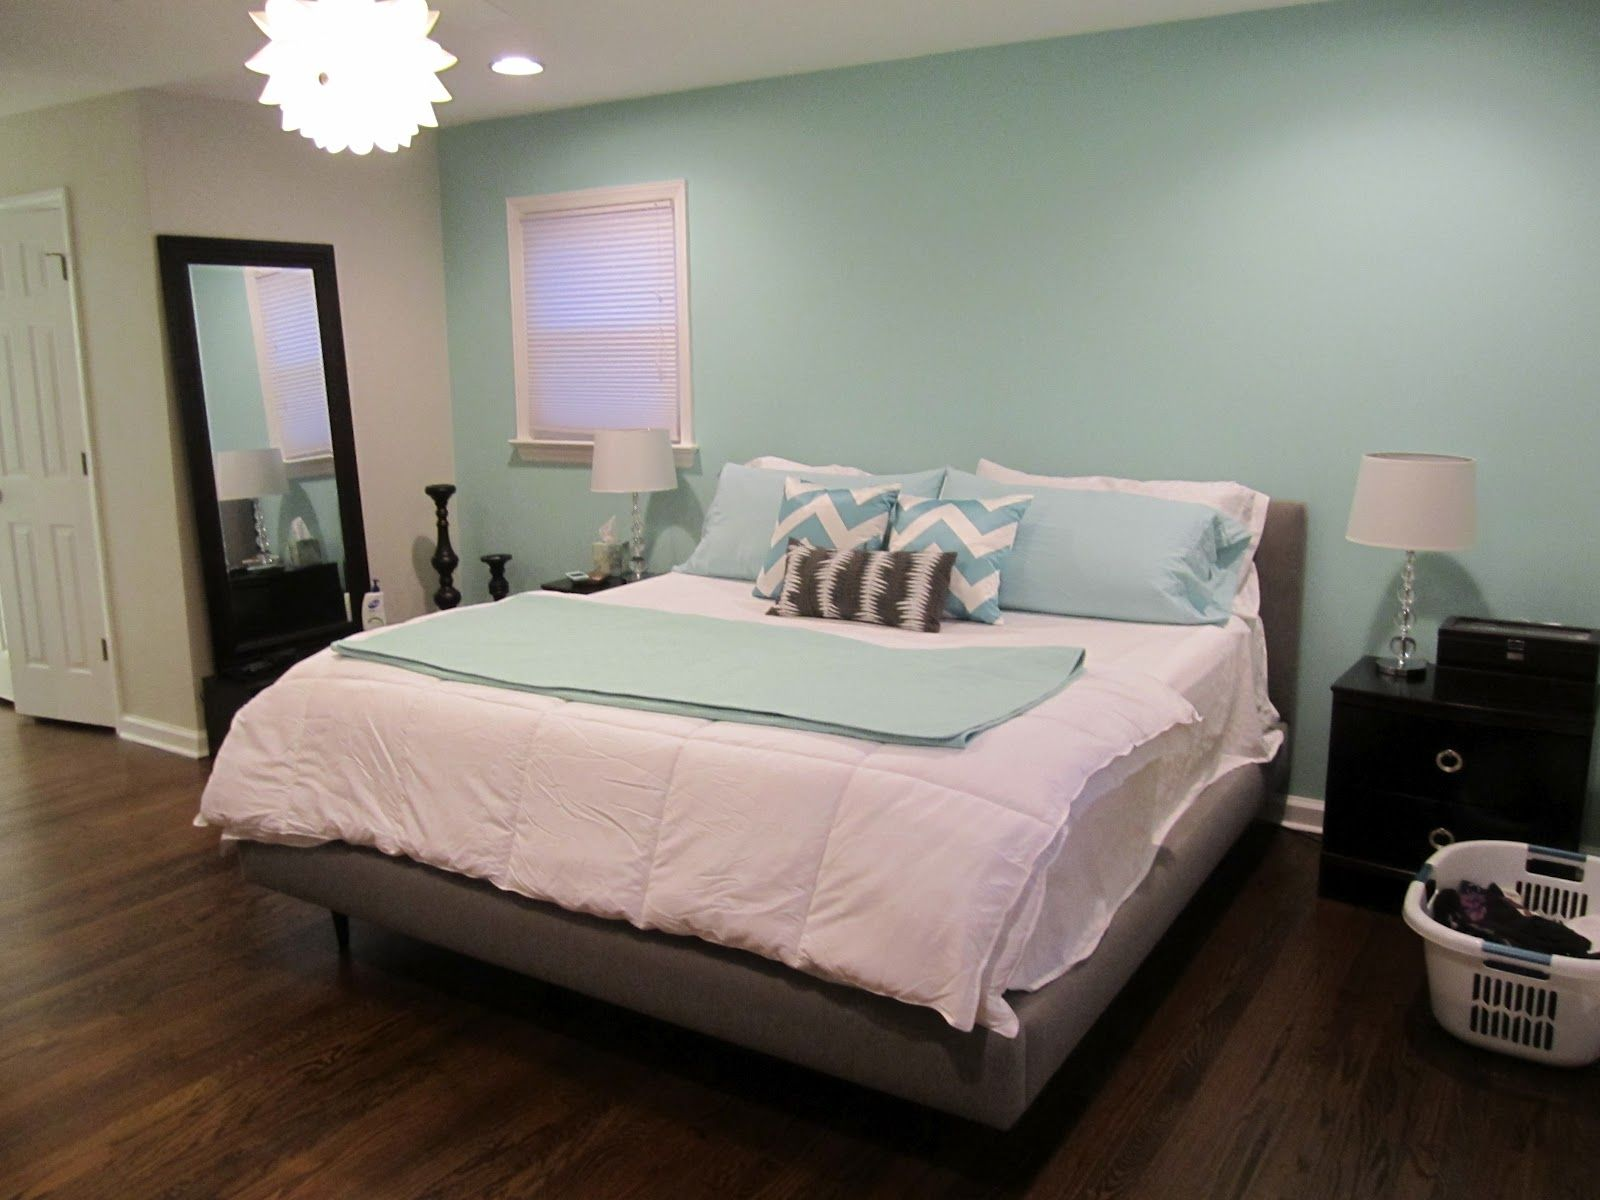 Behr s Balmy Seas Bedroom paint ideas Pinterest